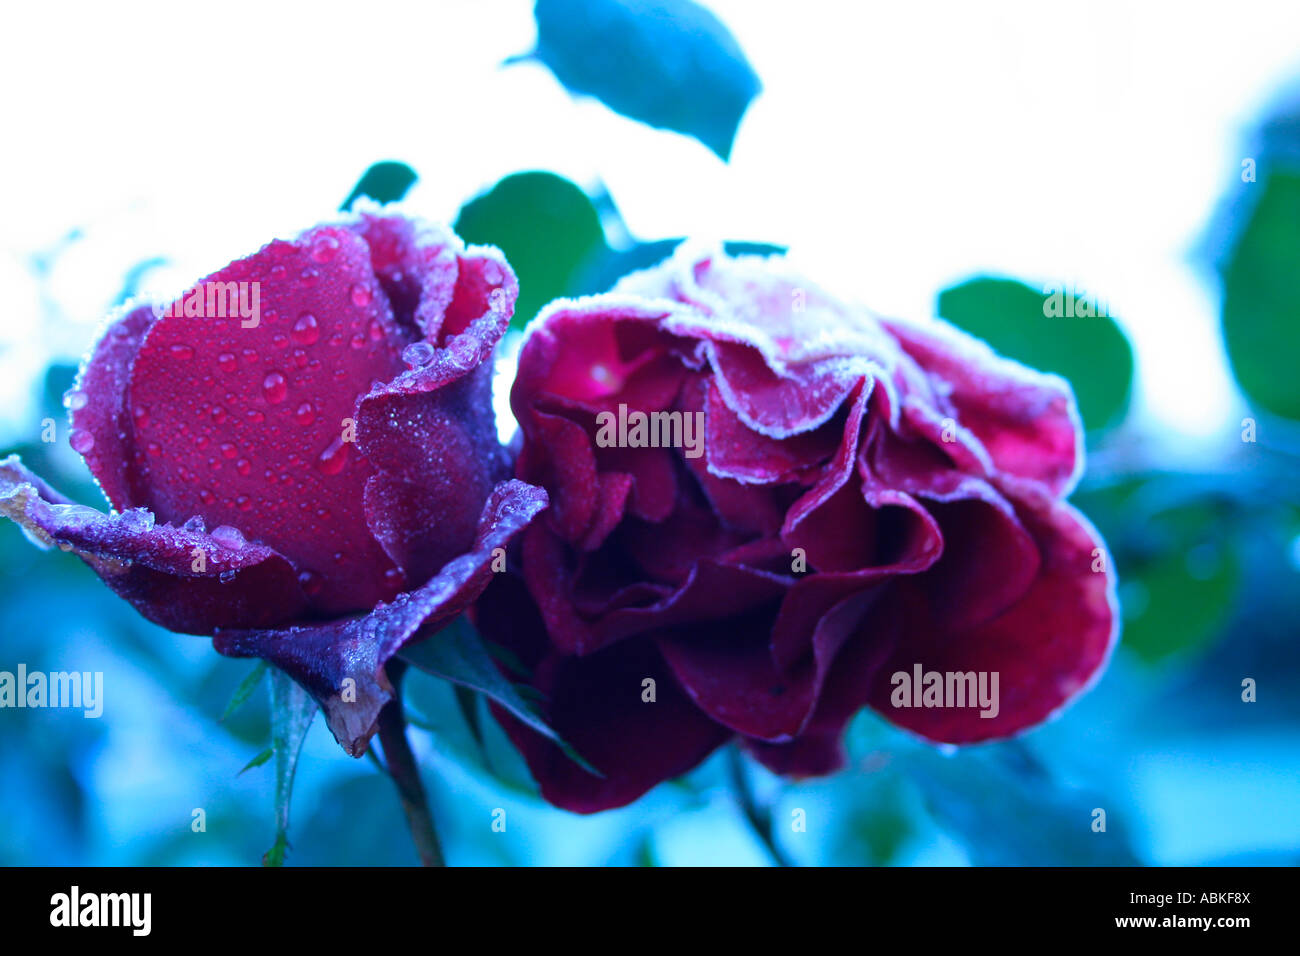 Two fosty roses surviving the winter - Stock Image